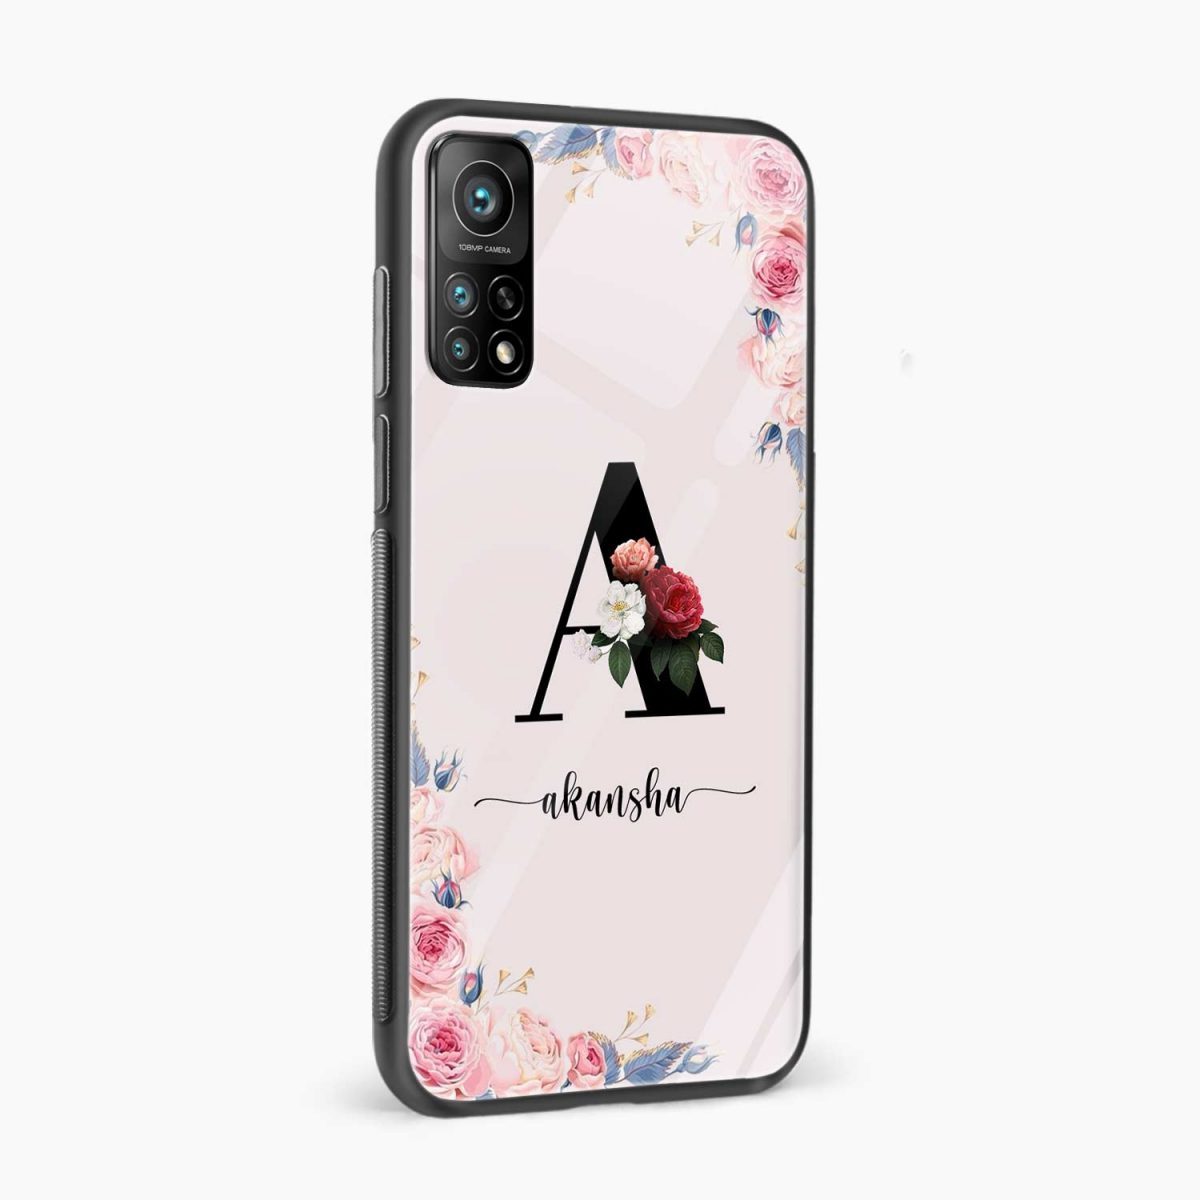 floral name personalised xiaomi mi 10t pro back cover side view